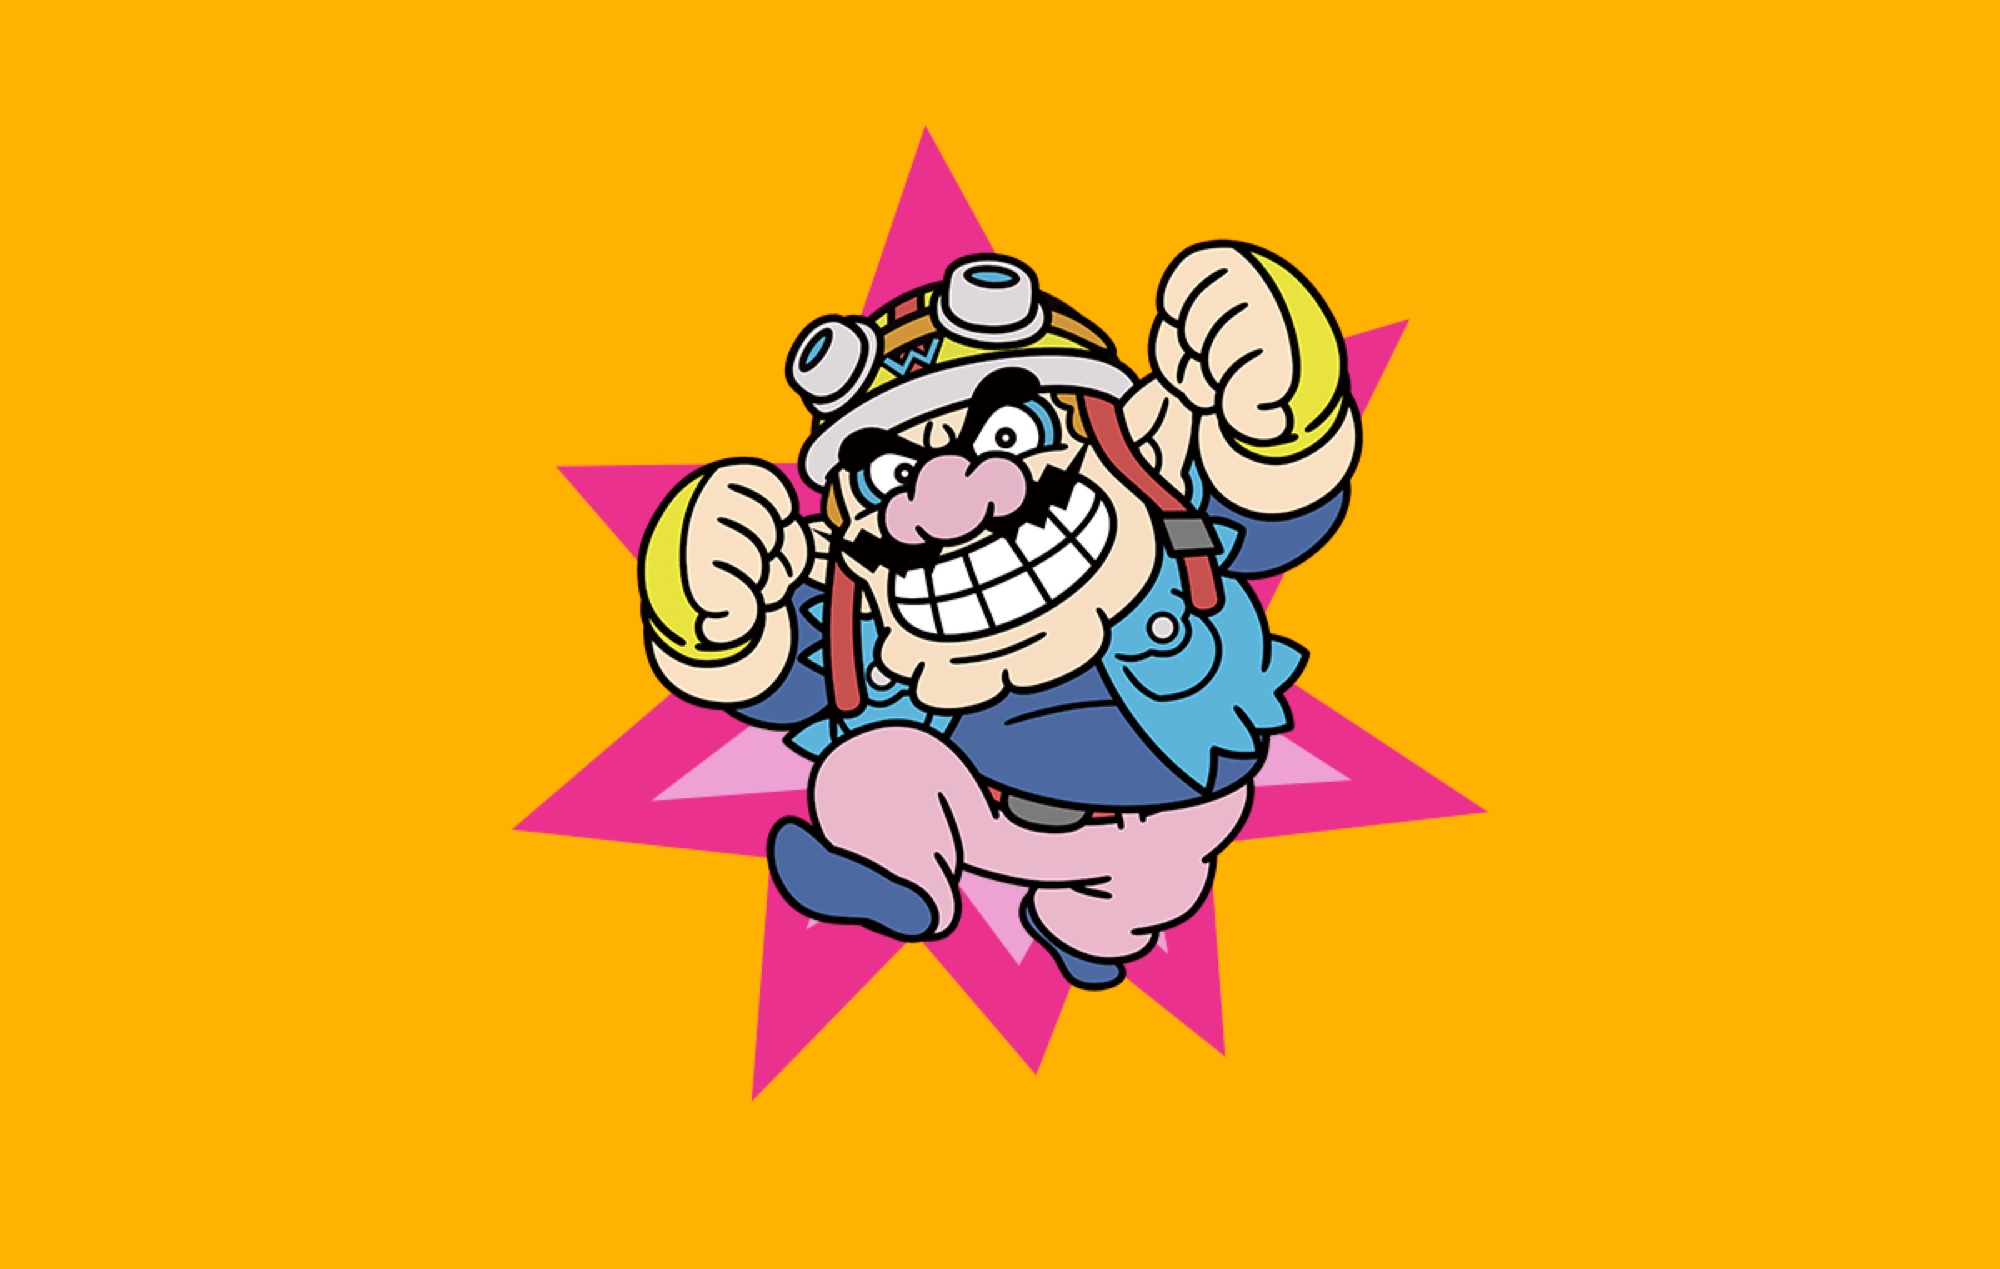 Wario jumps with his fist in the air